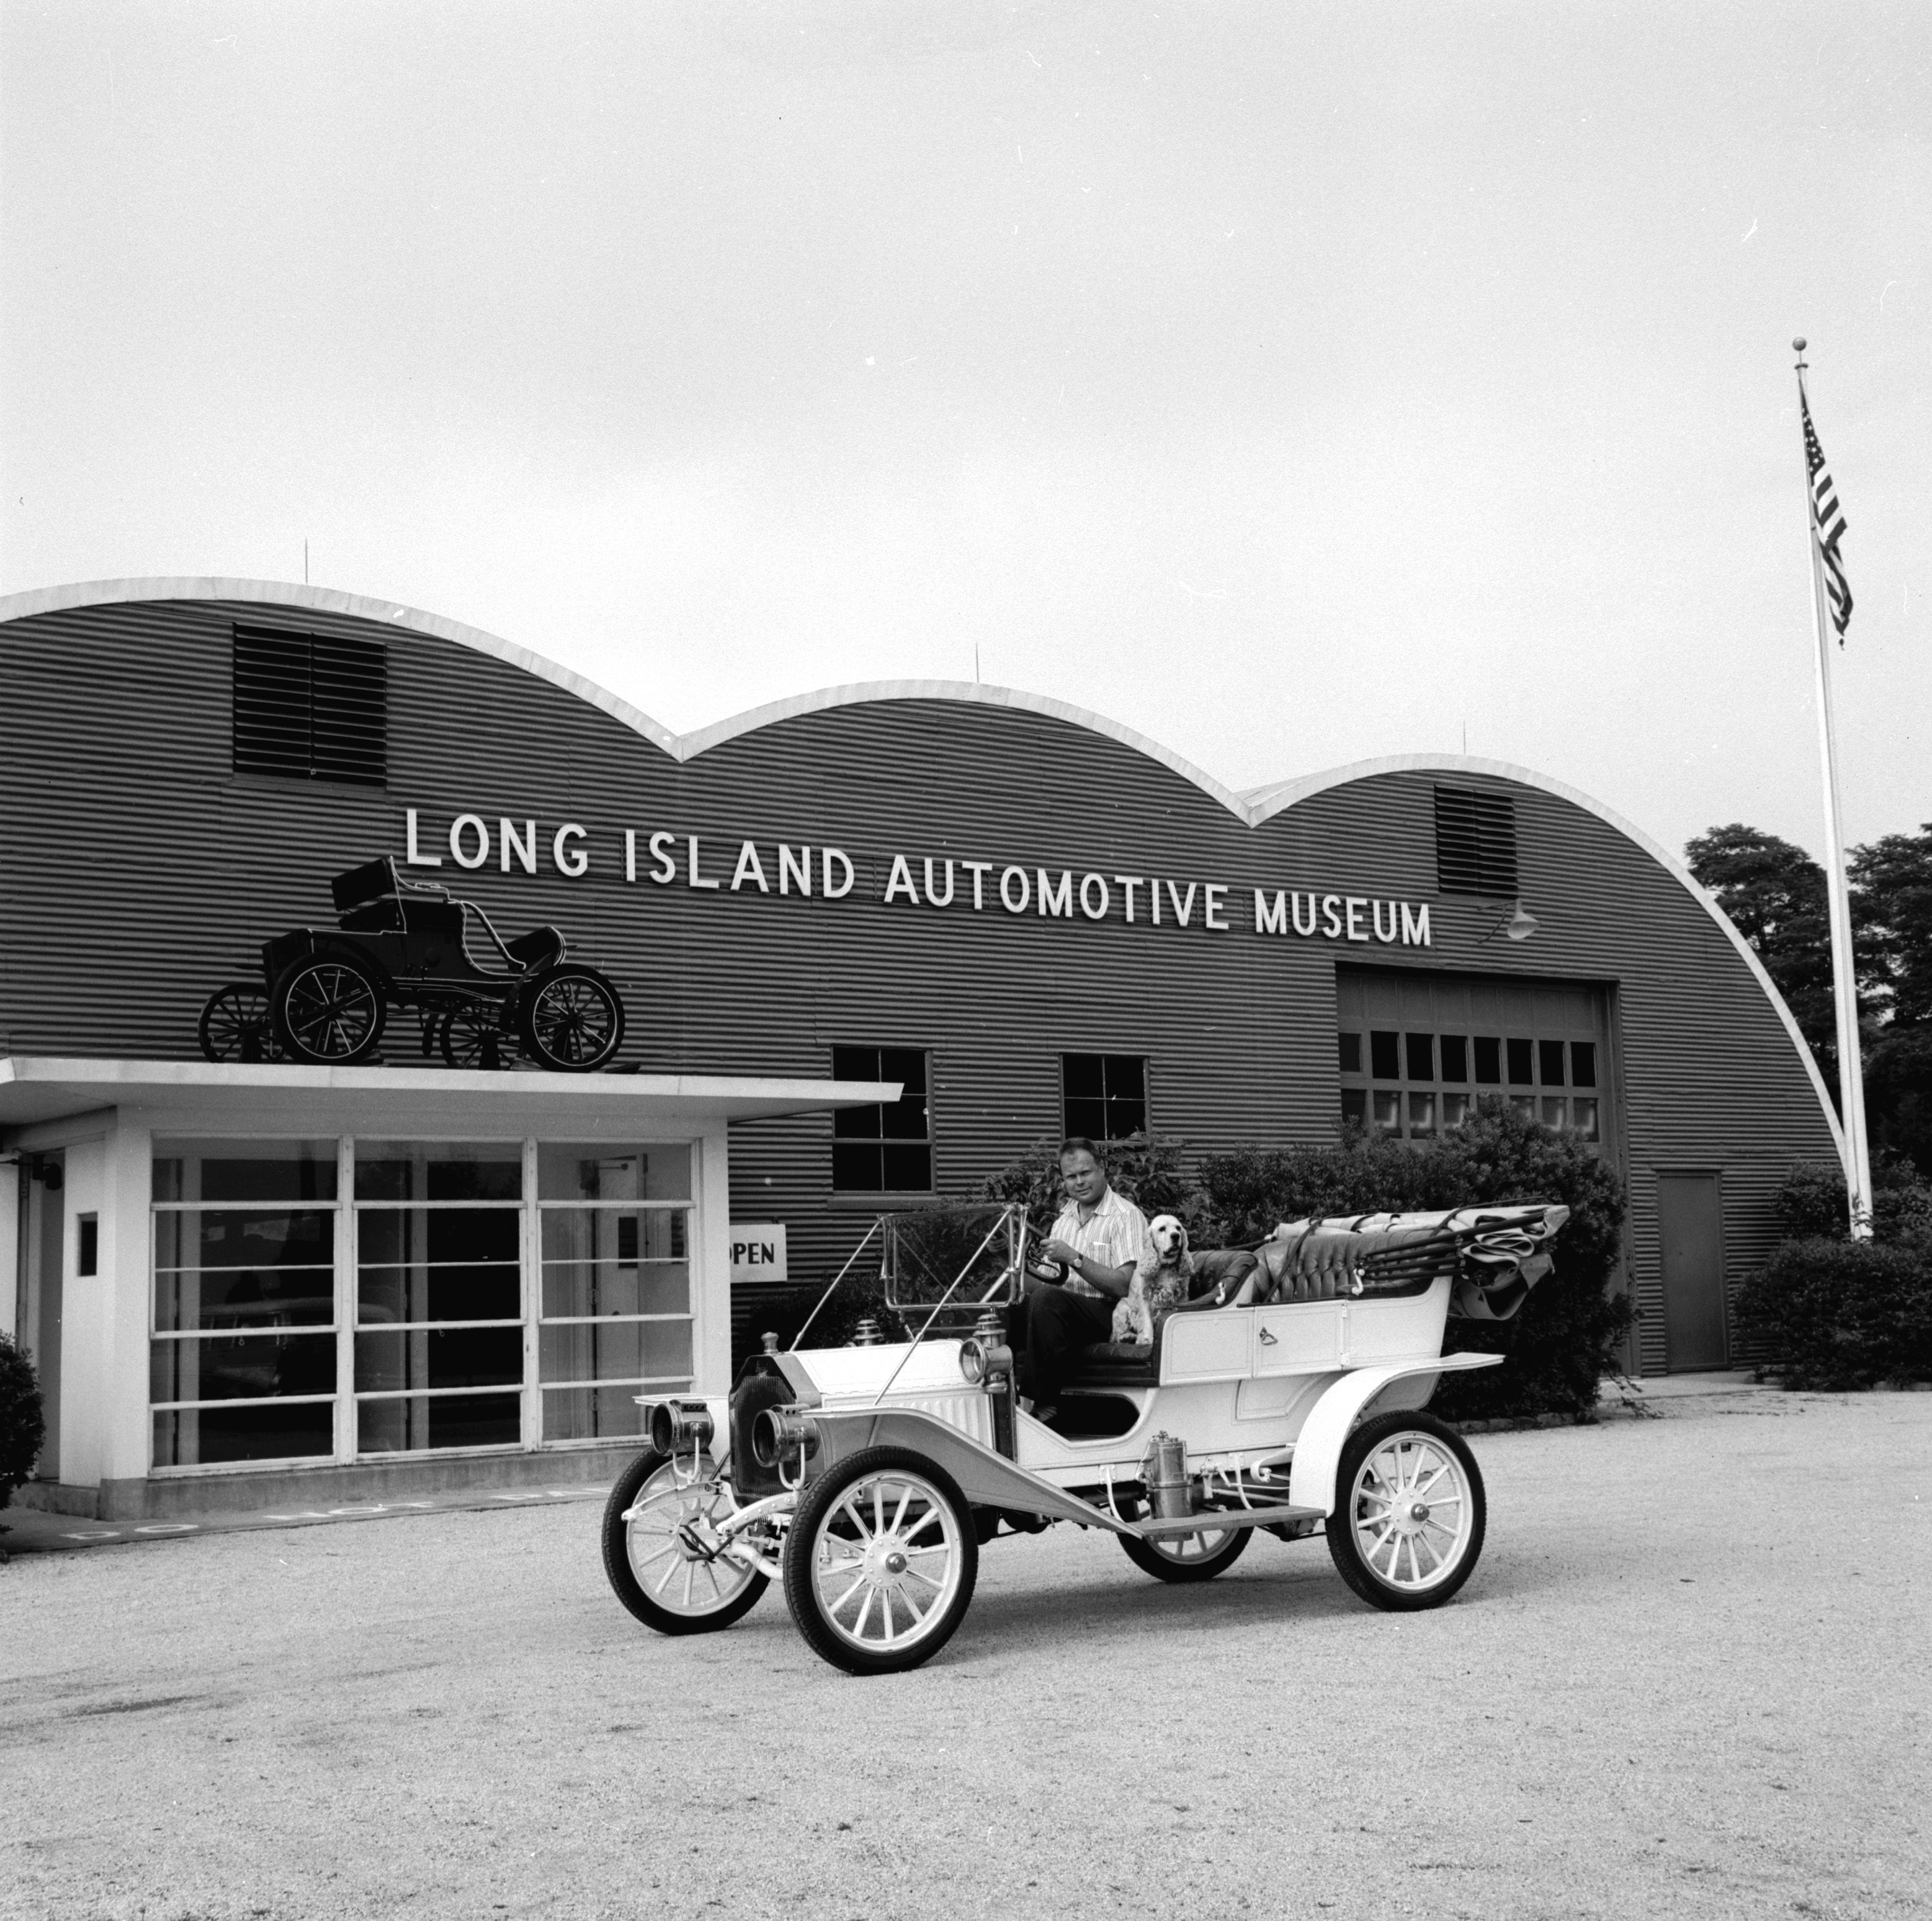 A Buick Model 10 Outside The Long Island Automotive Museum In New York  State, 1950s